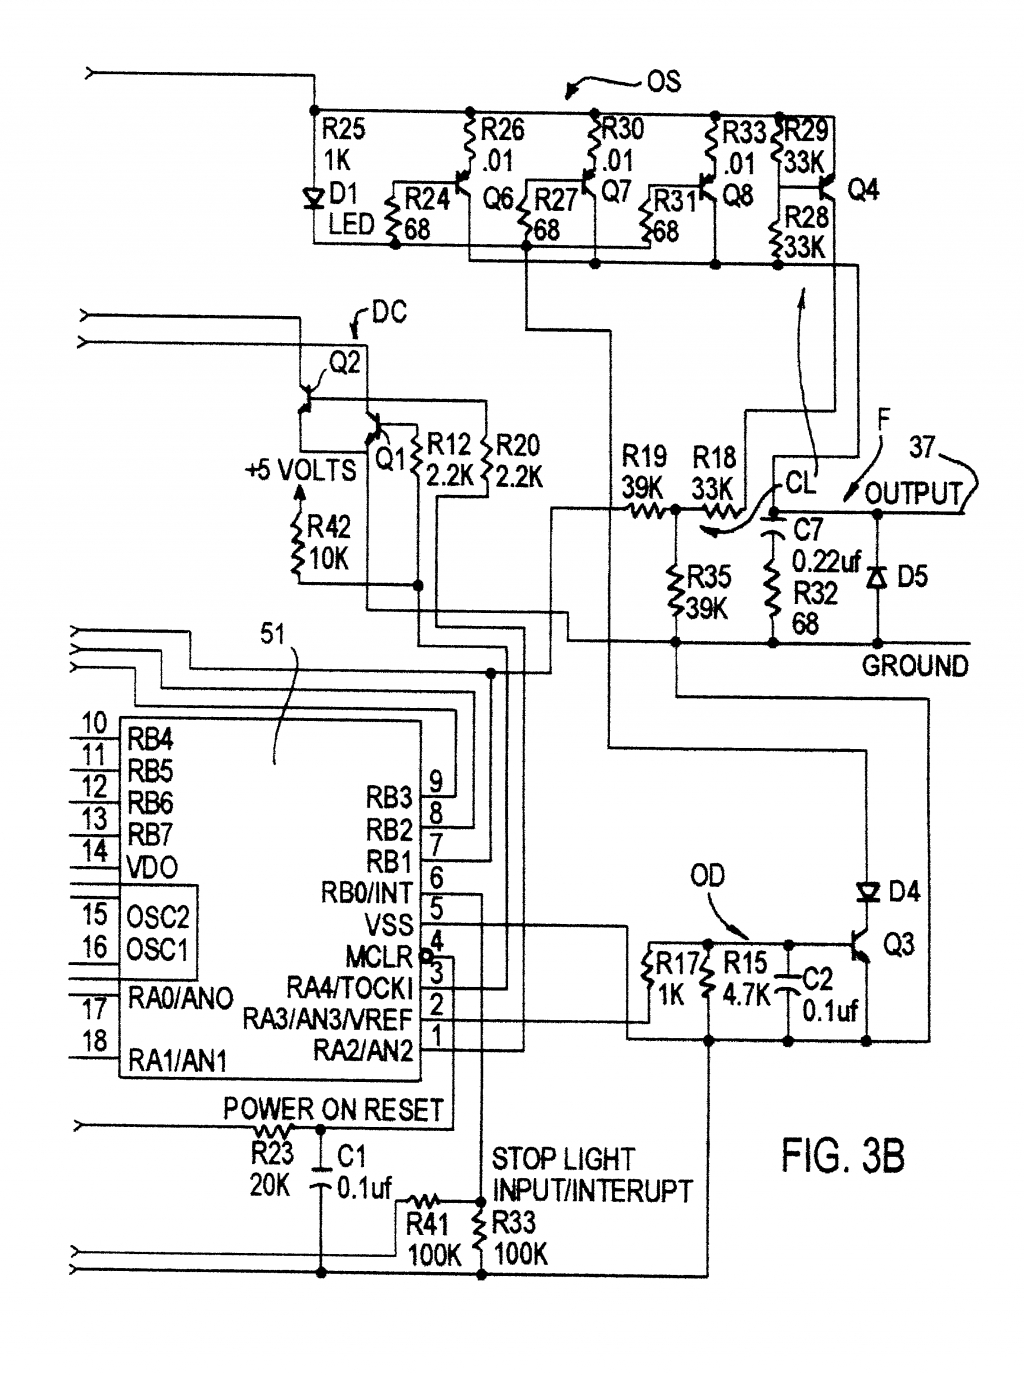 invisible fence wiring diagram Download-Invisible Fence Wiring Diagram Awesome Unusual Baja Scooter 48 Volt Wiring Schematic S Electrical 8-f